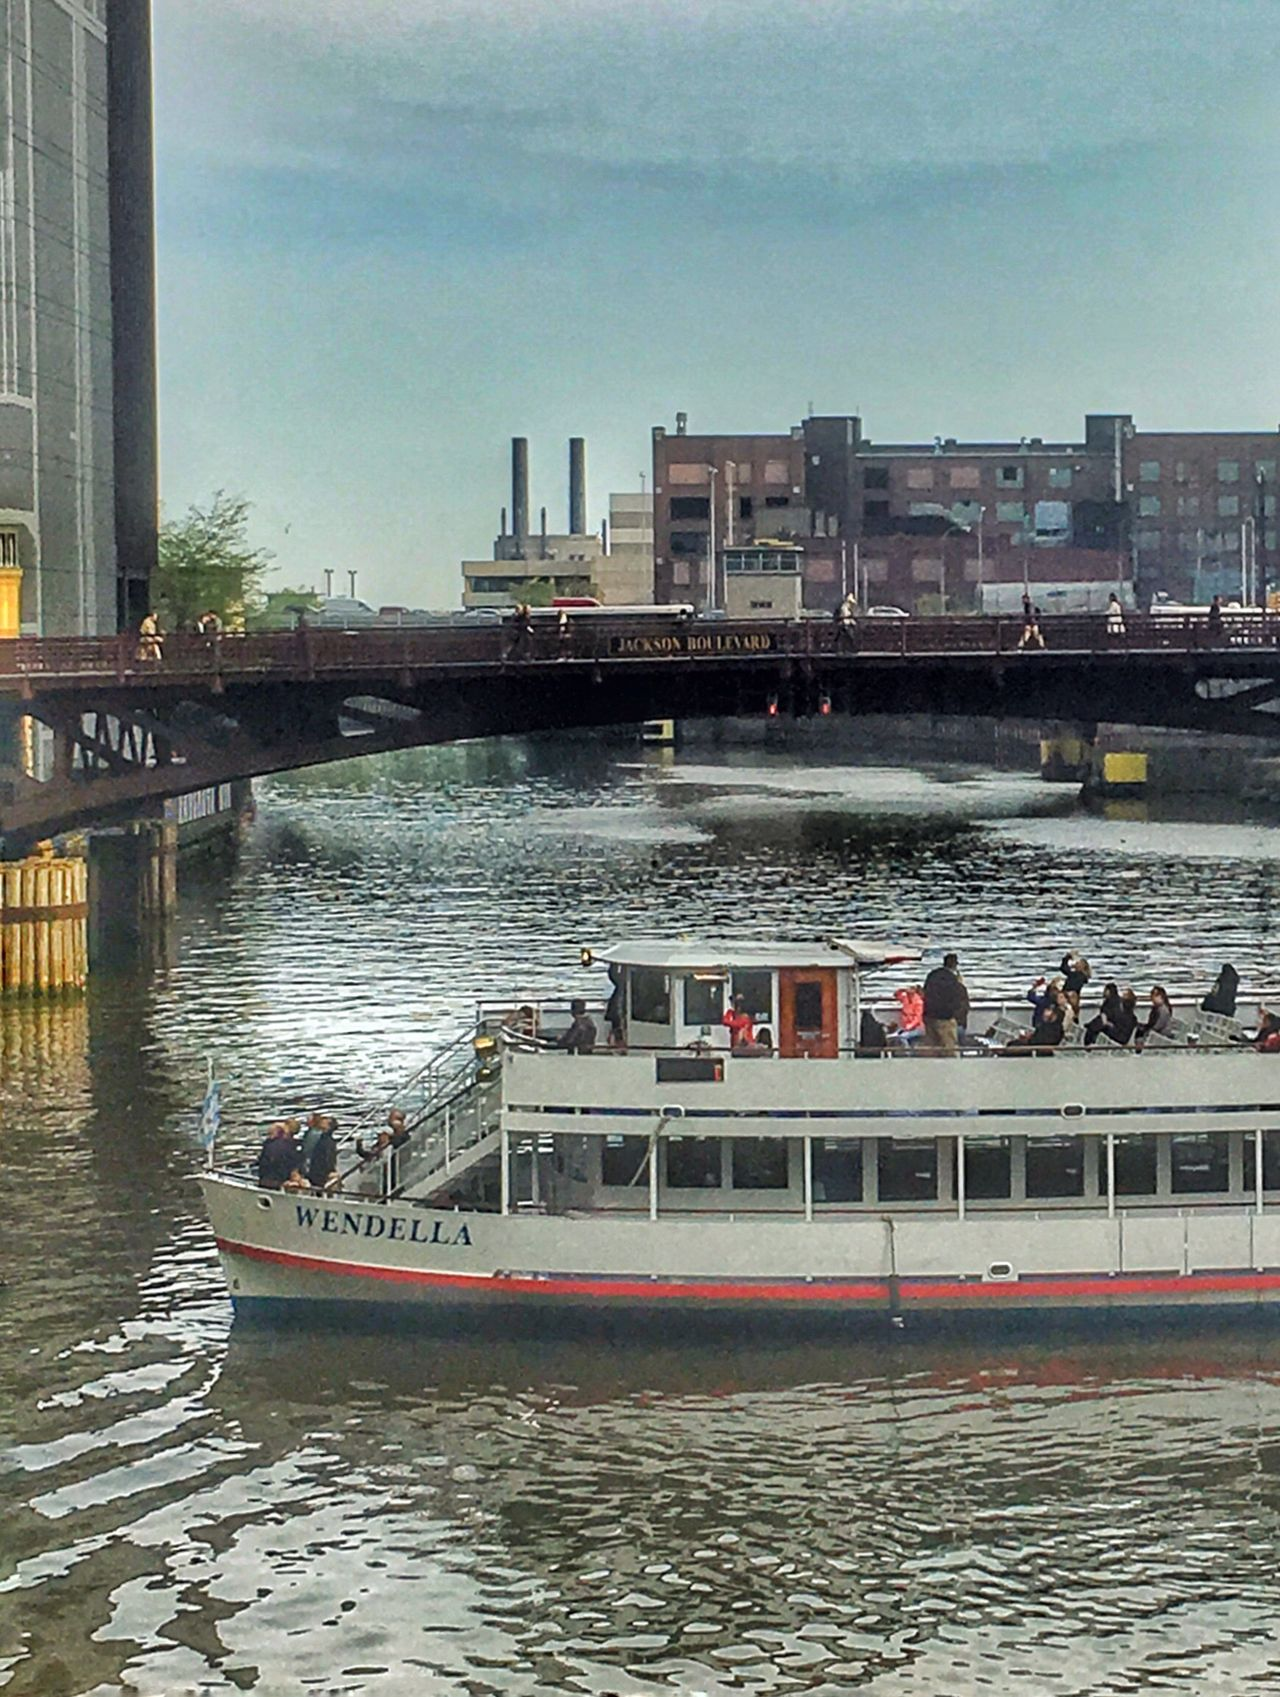 Tourists on the Chicago River Taking Photos of the Buildings Chicago Architecture Boat Boatrides River Tour 2016 IPhone Amateurphotography EyeEm Best Shots EyeEm Gallery Eyeemurban Eyeemurbanshot Pictureoftheday